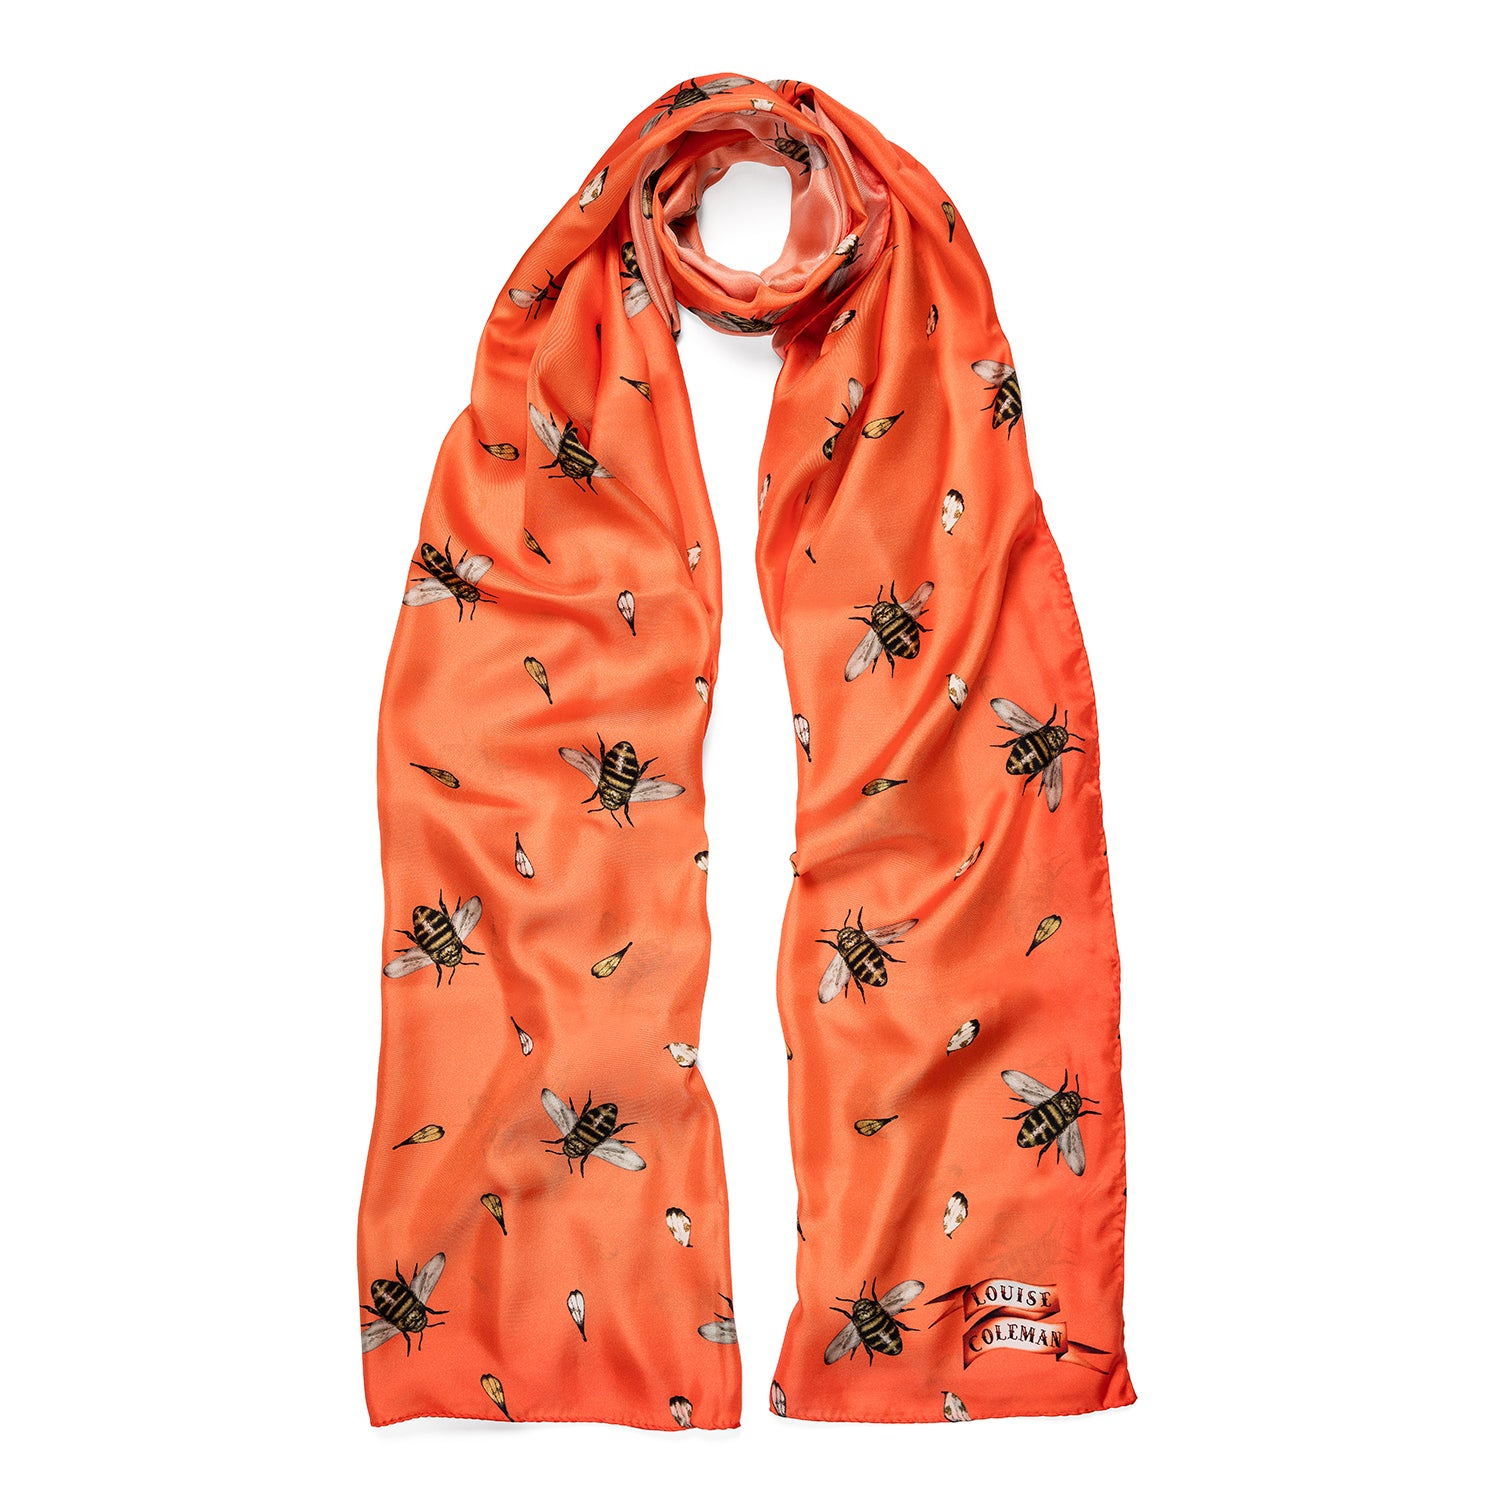 The orange Bertie silk bee print scarf in a large square shape by Louise Coleman